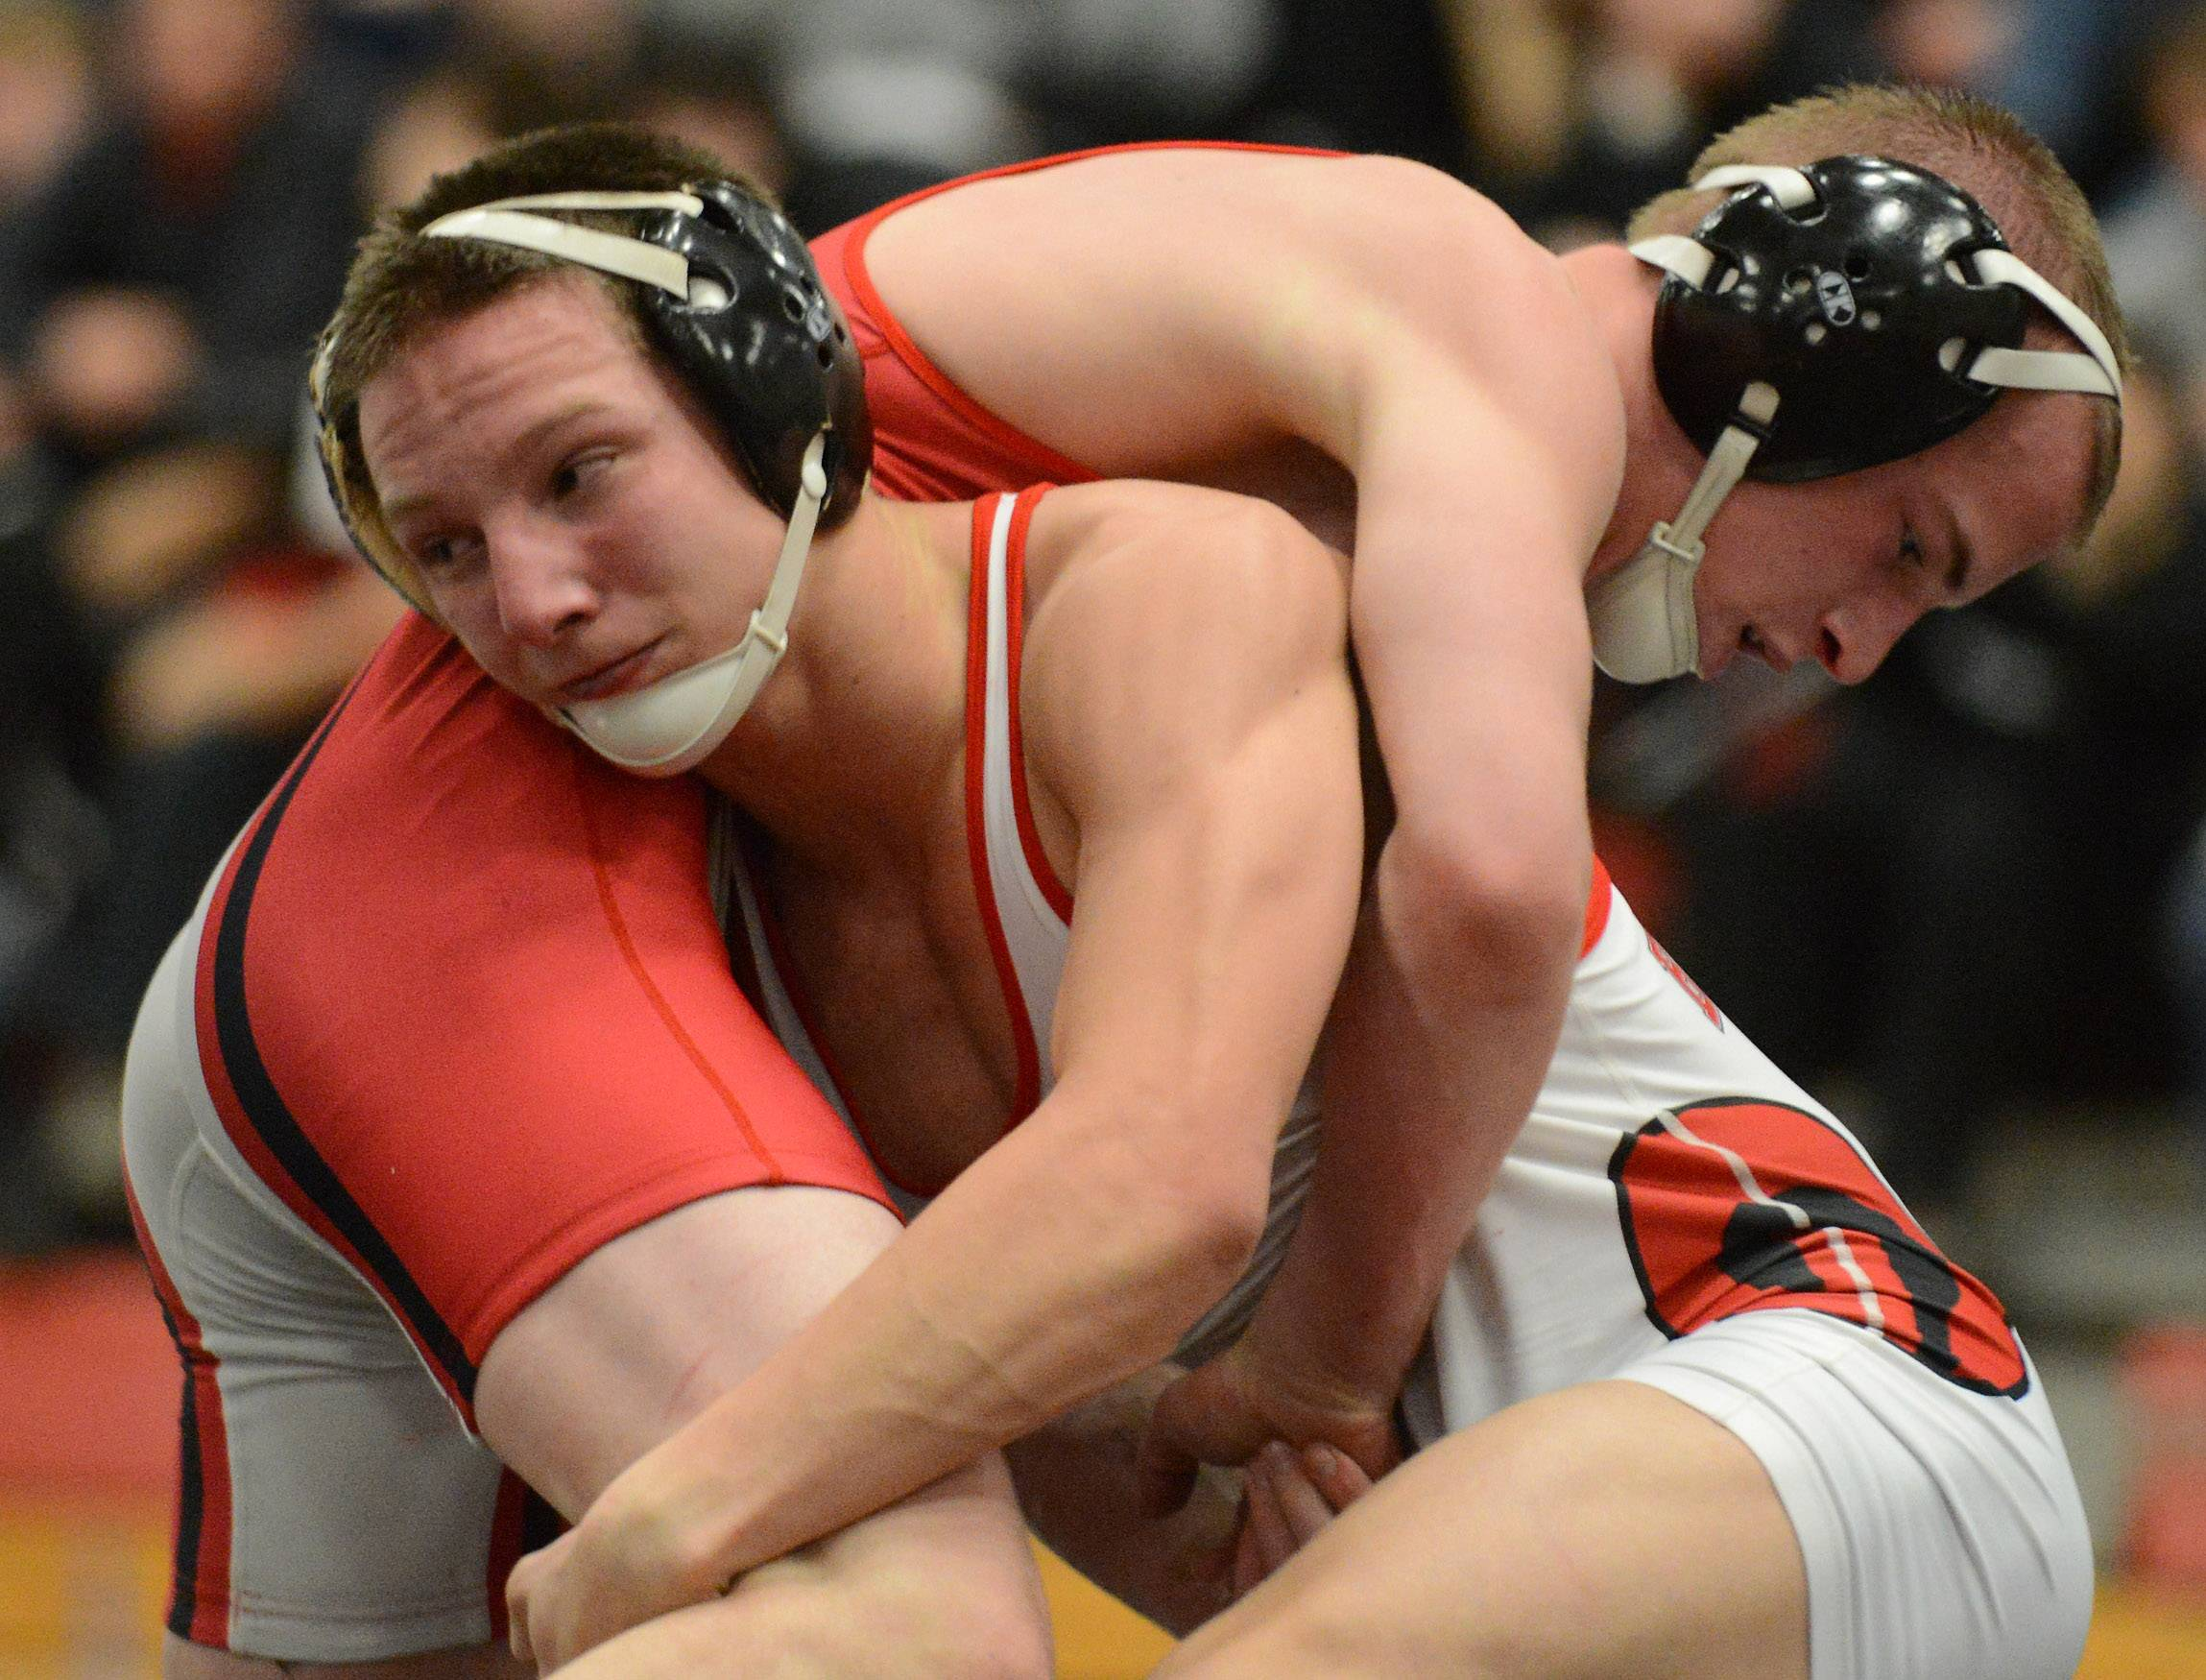 Barrington's Matt Conrad, in red, takes on Troy Parent of Grant in the 132-pound final during Class 3A sectional wrestling finals in Barrington on Saturday.